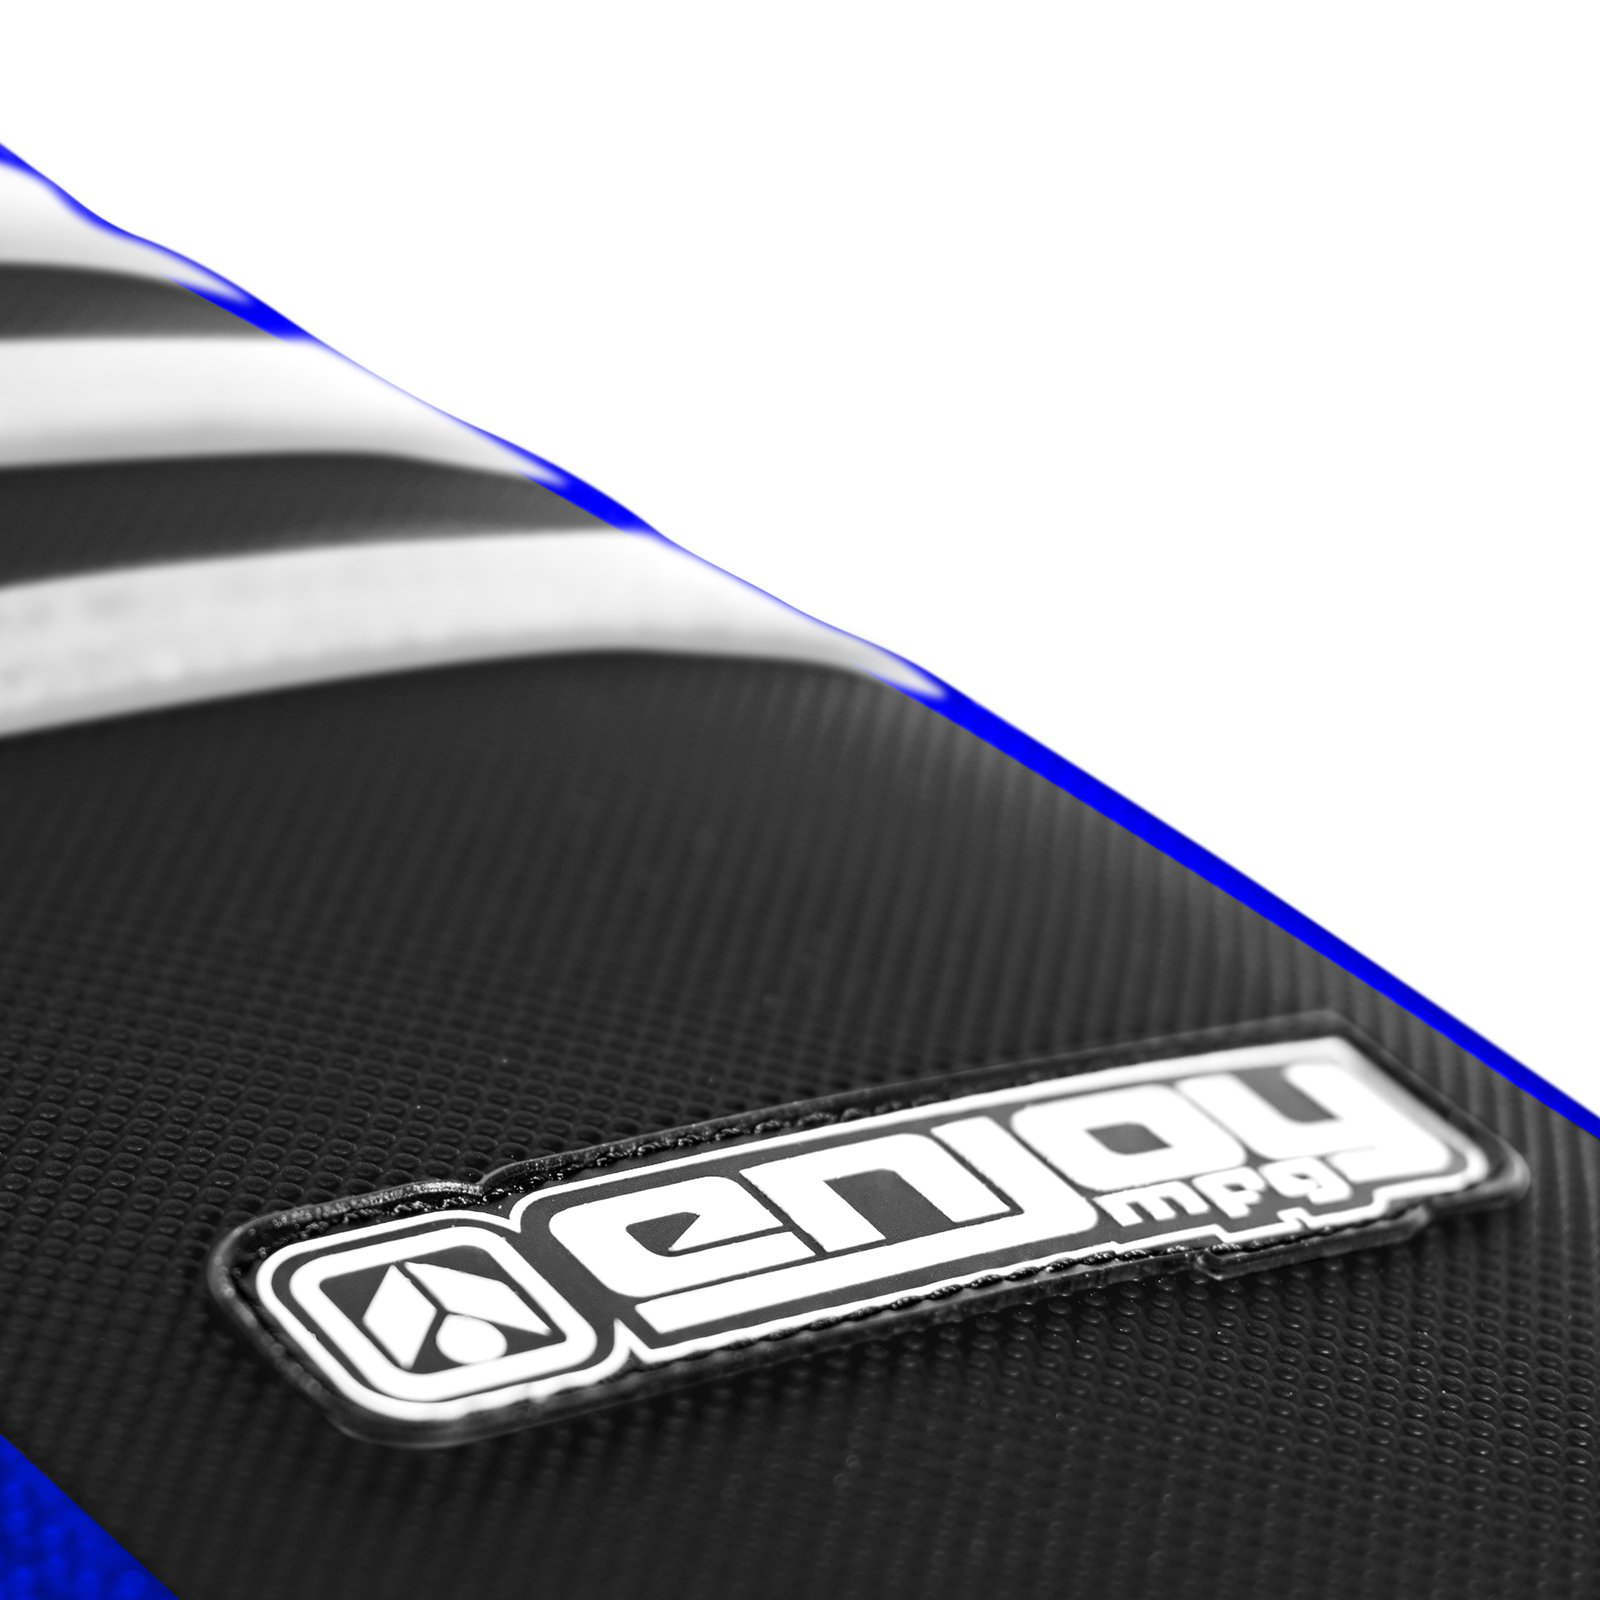 Enjoy MFG Ribbed Seat Cover for 1996-2001 Yamaha YZ 125/250 - Blue Sides / Black Top / White Ribs by Enjoy MFG (Image #2)